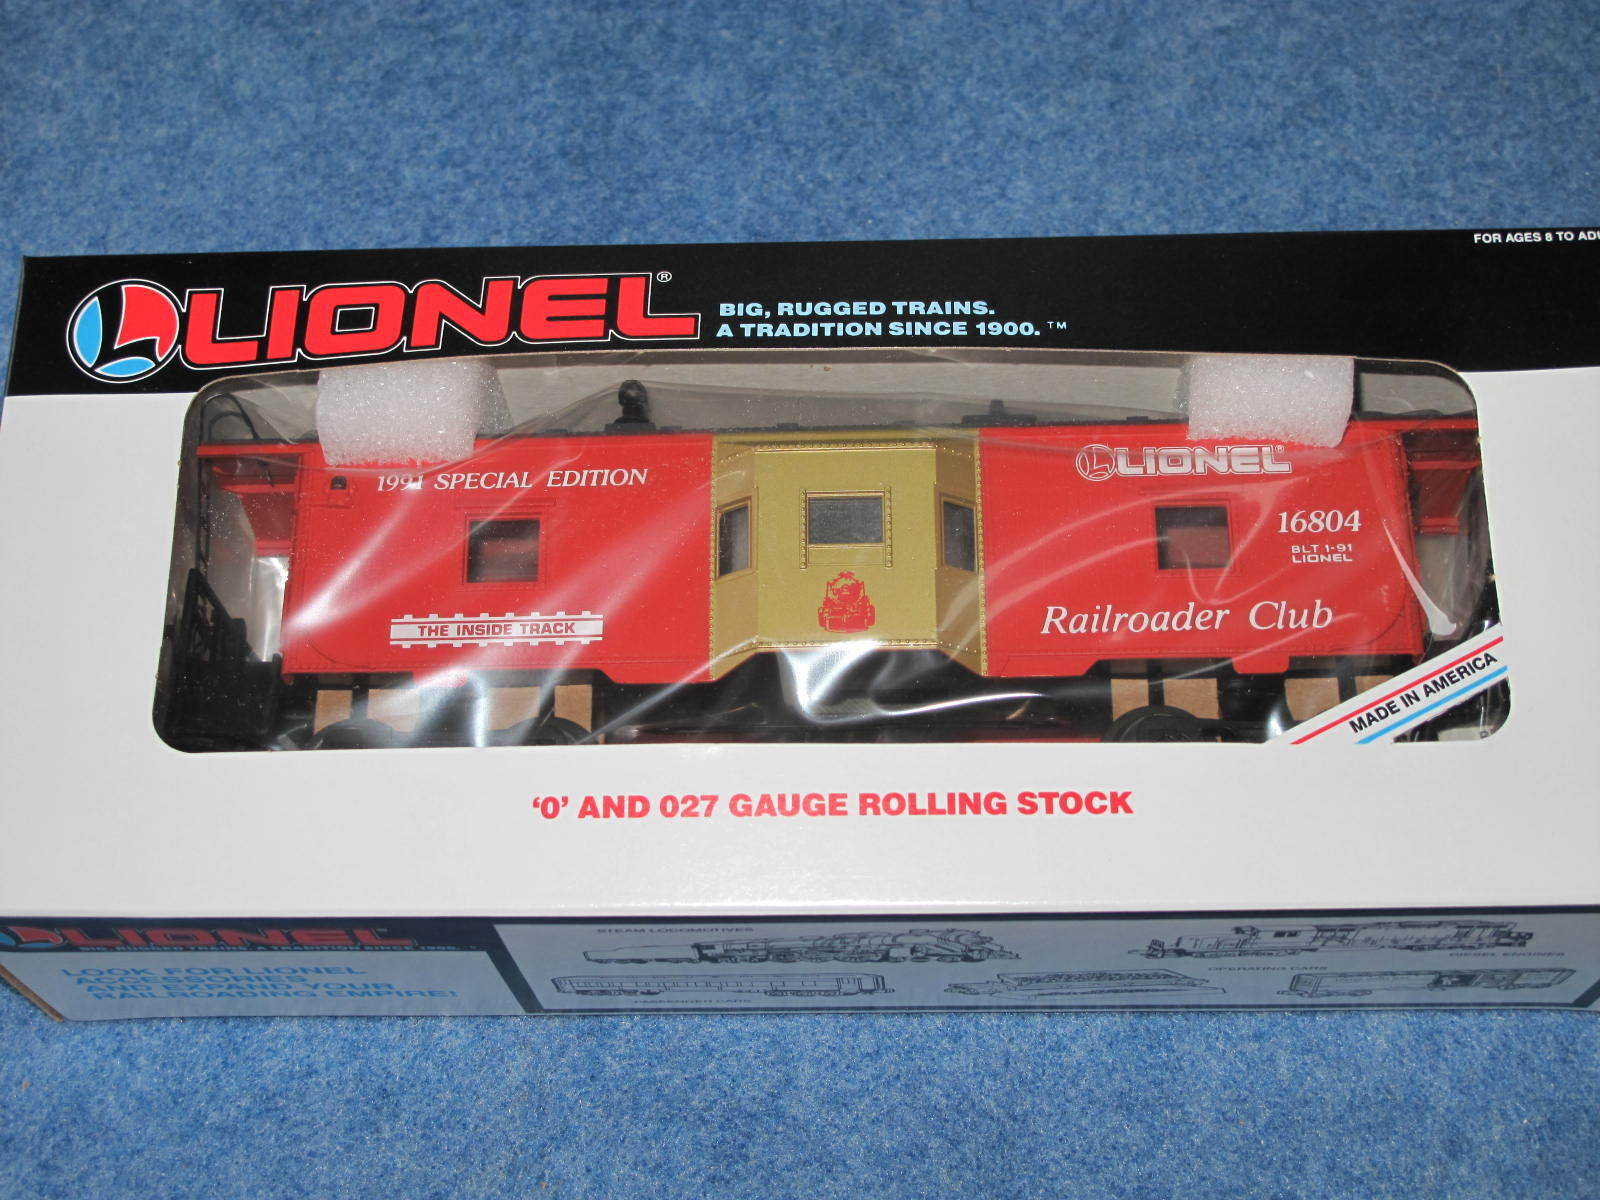 1991 Lionel 6-16804 Lionel Railroader Club Bay Window Caboose NIB L2282